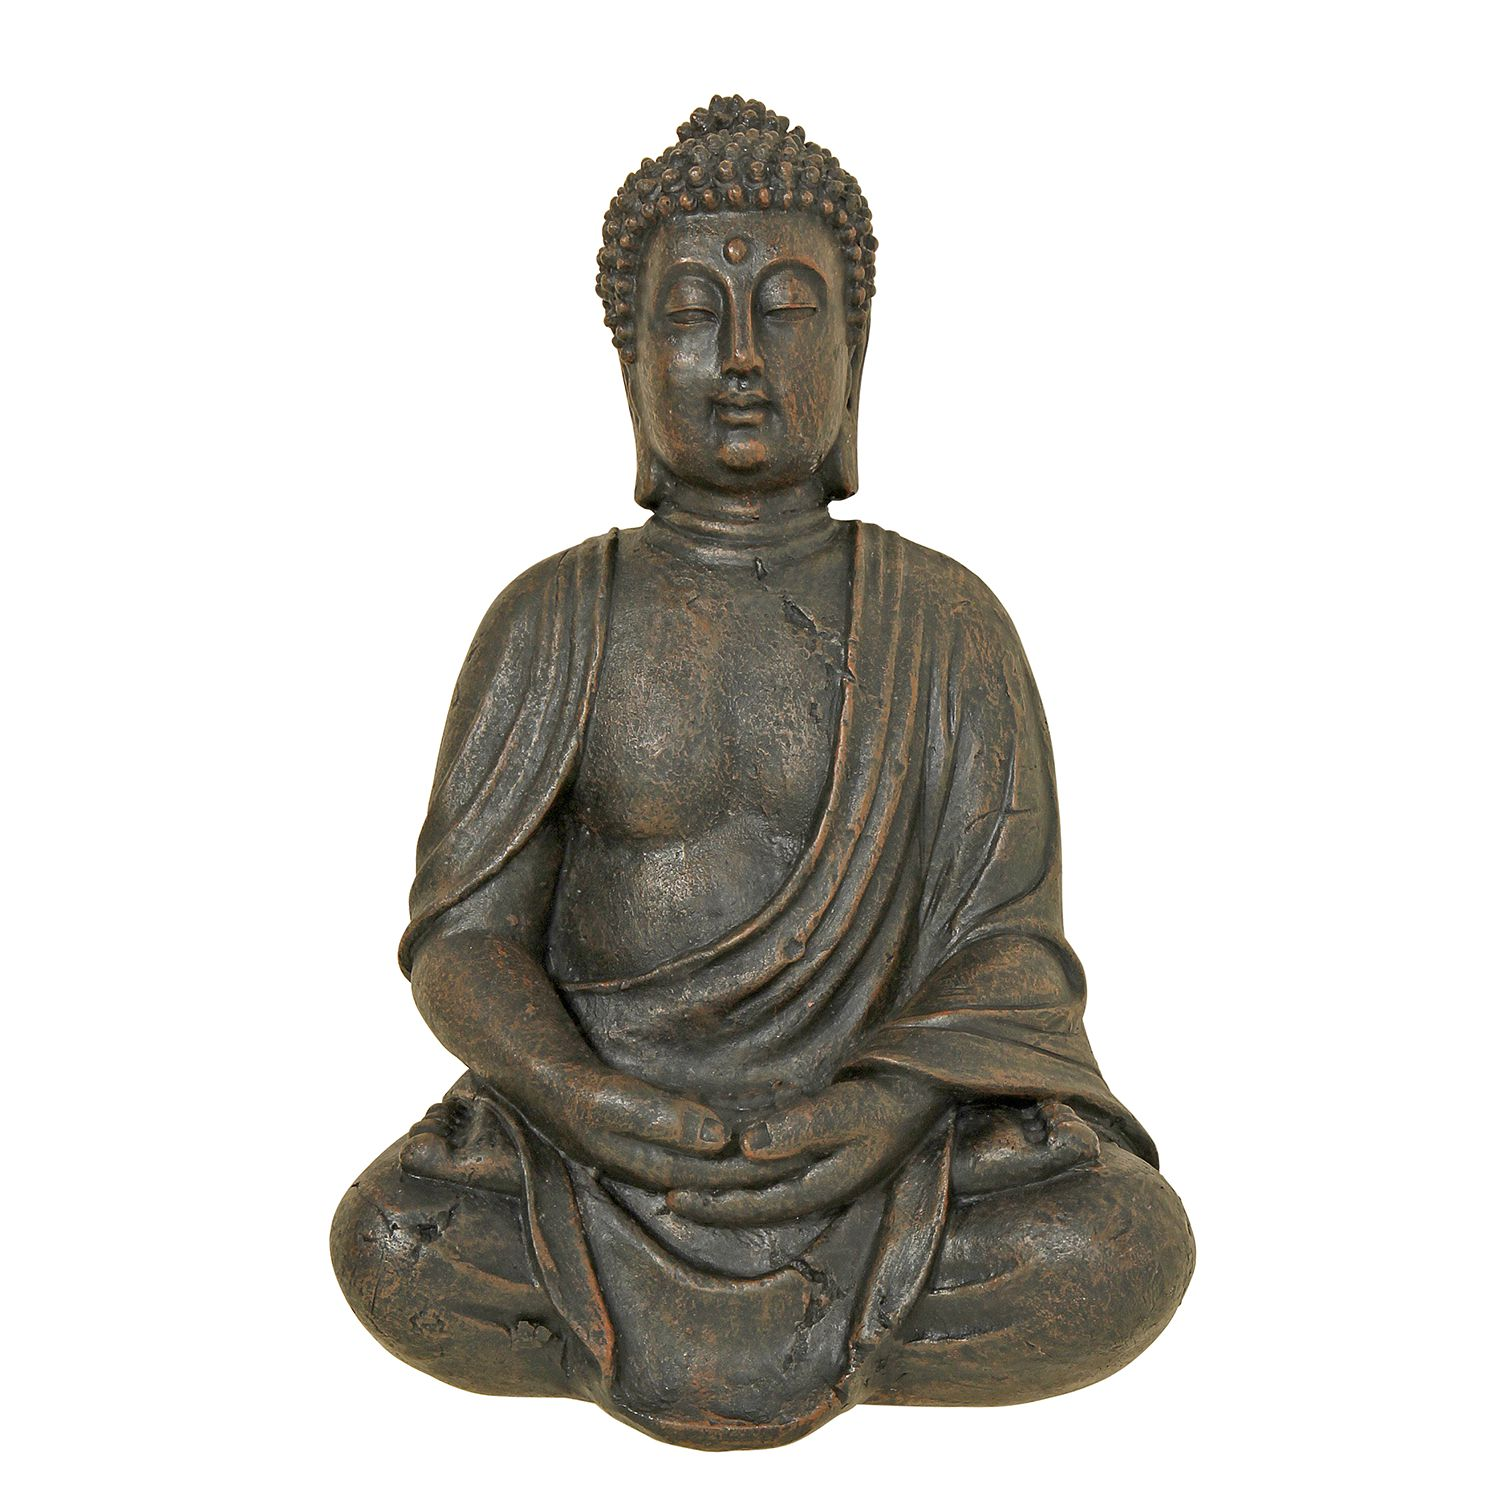 Home 24 - Statue bouddha - résine synthétique - marron, ars manufacti